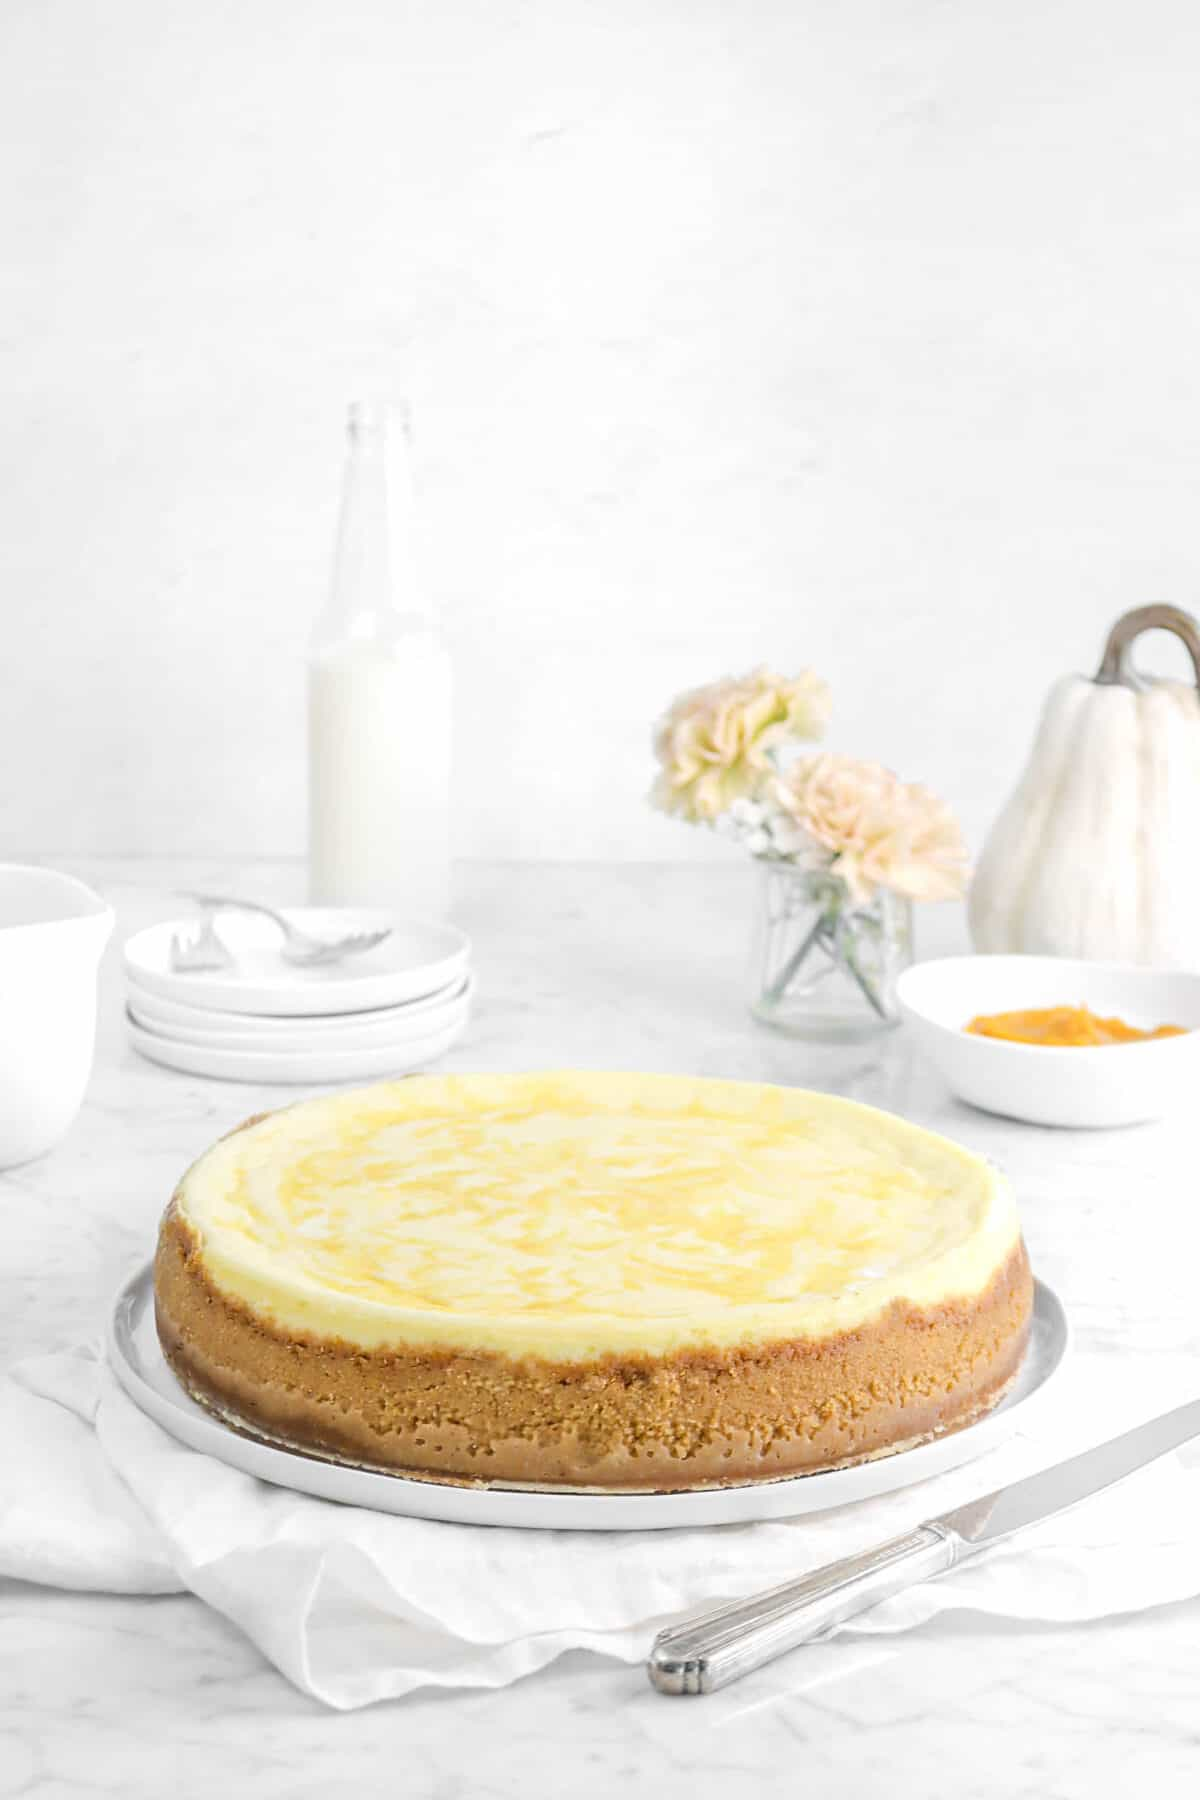 cheesecake on a plate with a knife, napkin, flowers, plates, milk, and white pumpkin behind